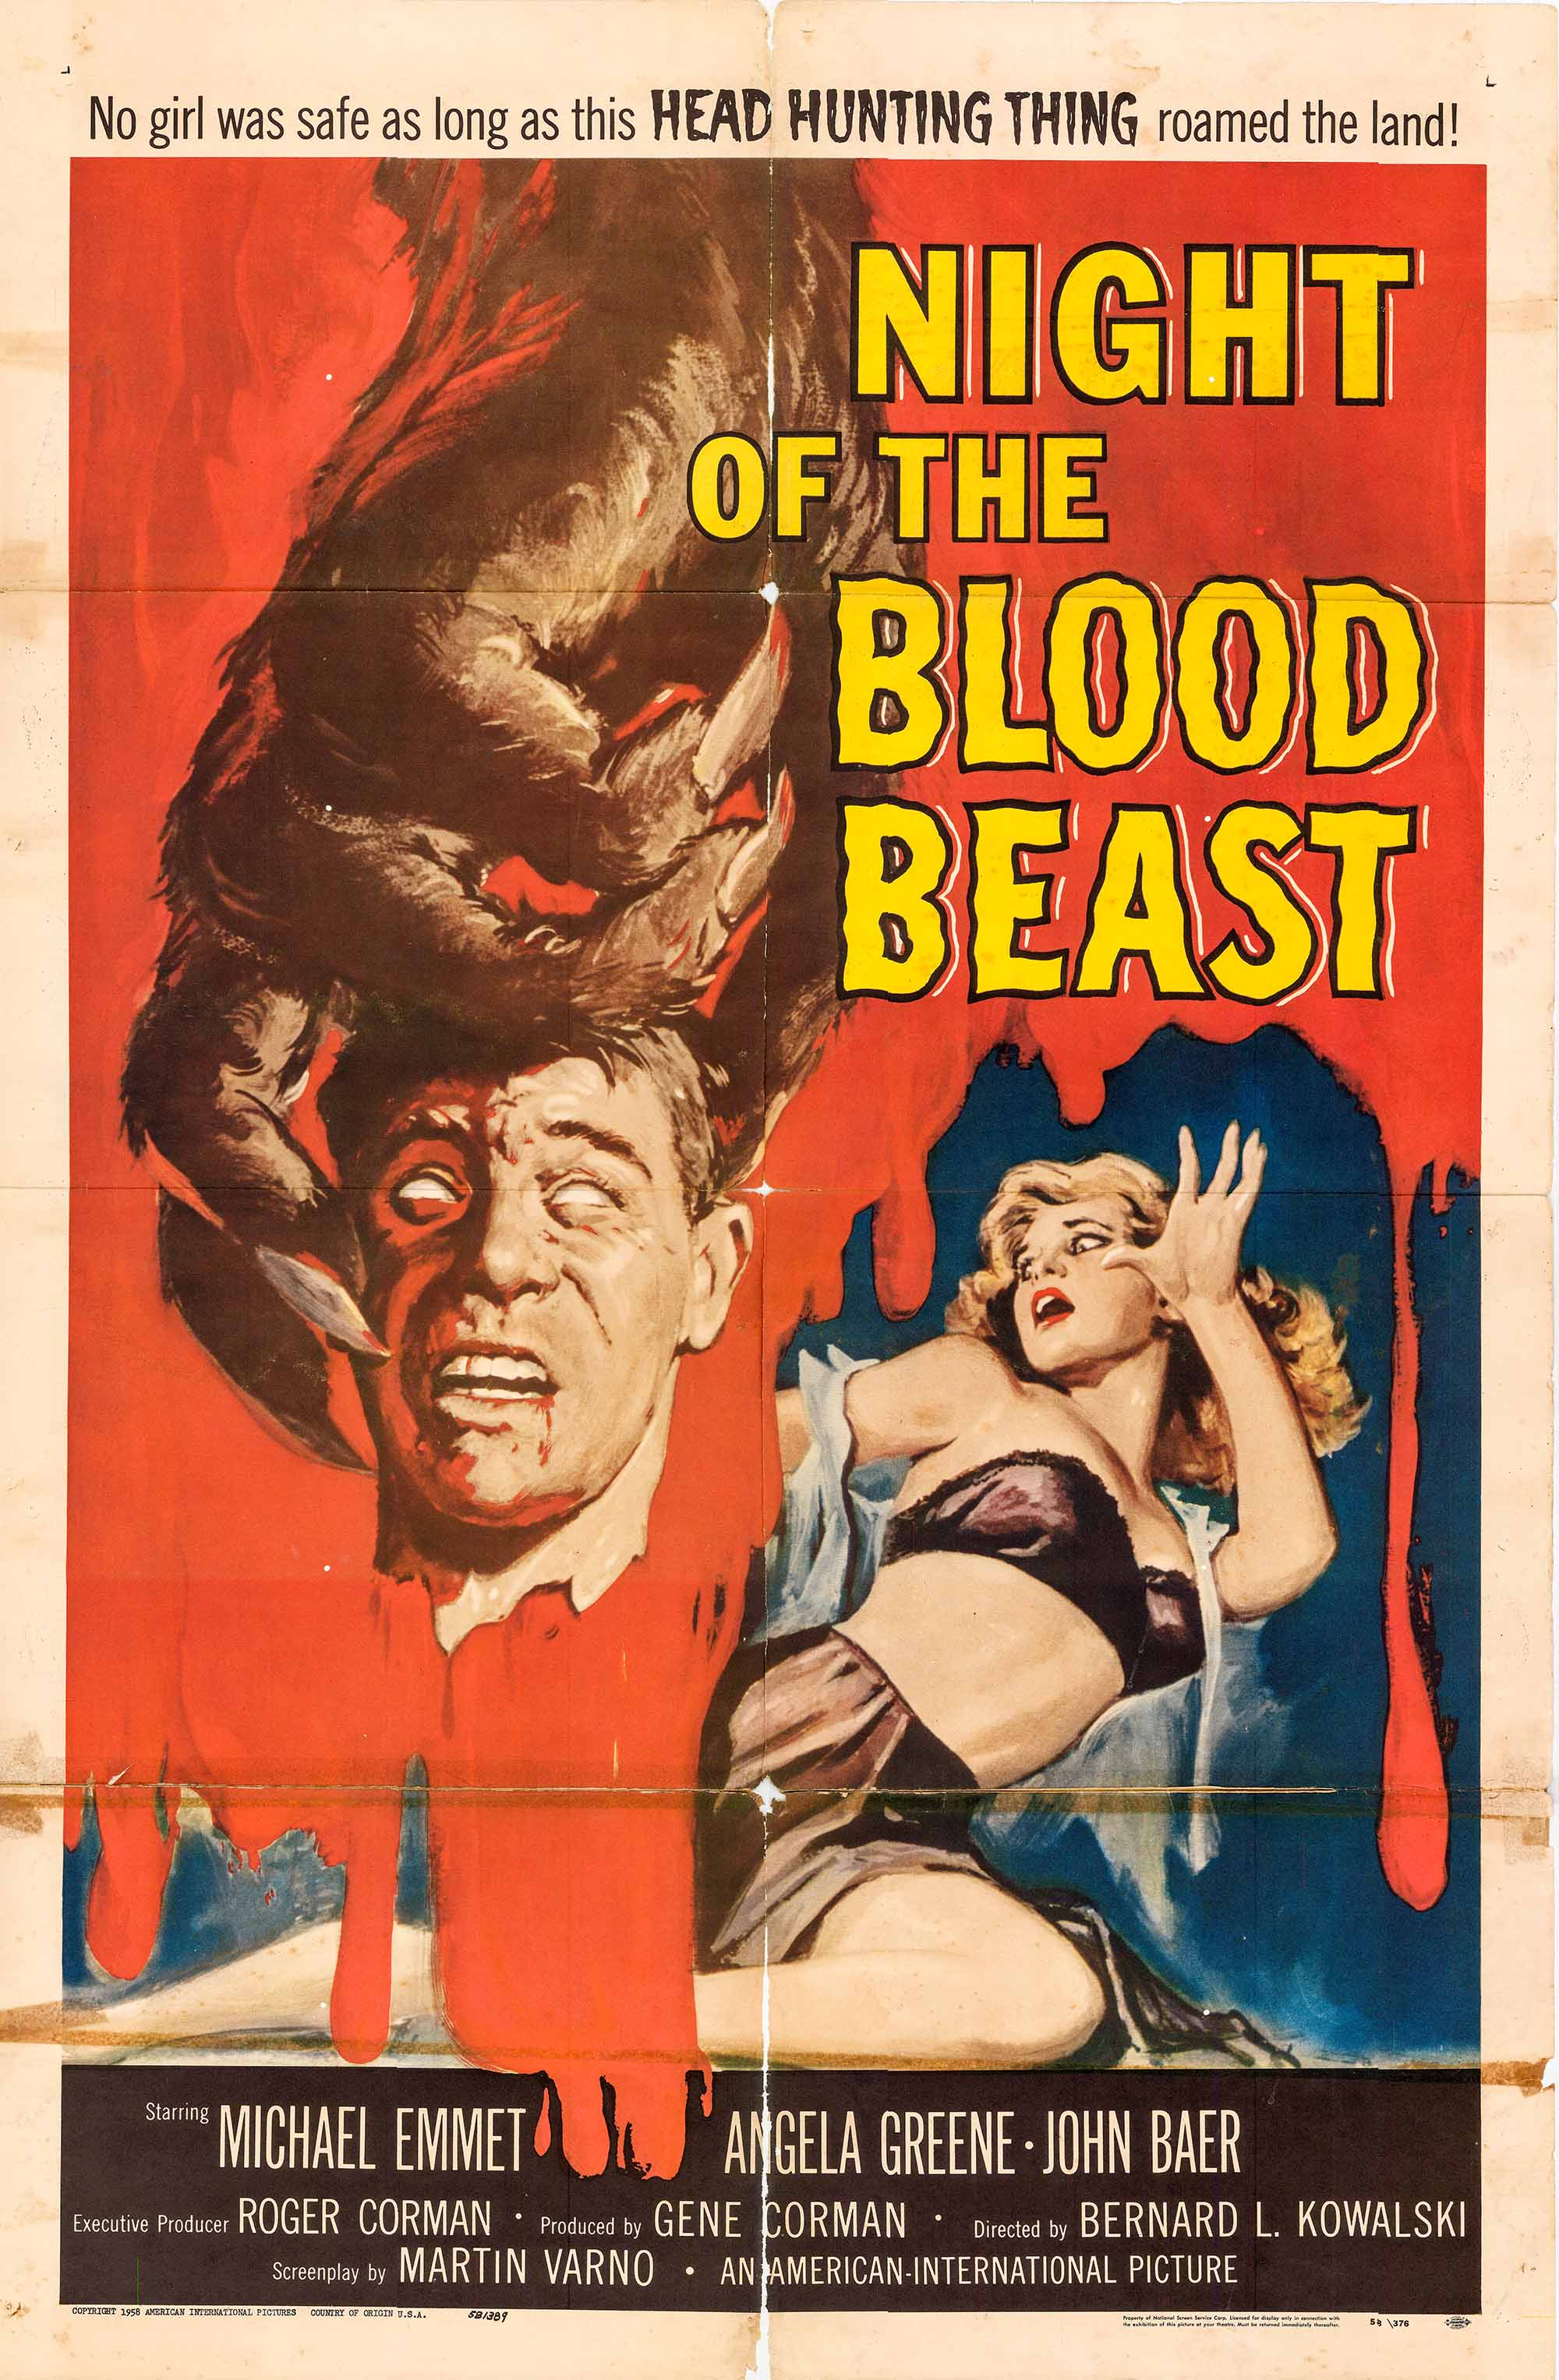 Pictured is a US one-sheet promotional poster for the 1958 Bernard L. Kowalski film Night of the Blood Beast starring John Baer.